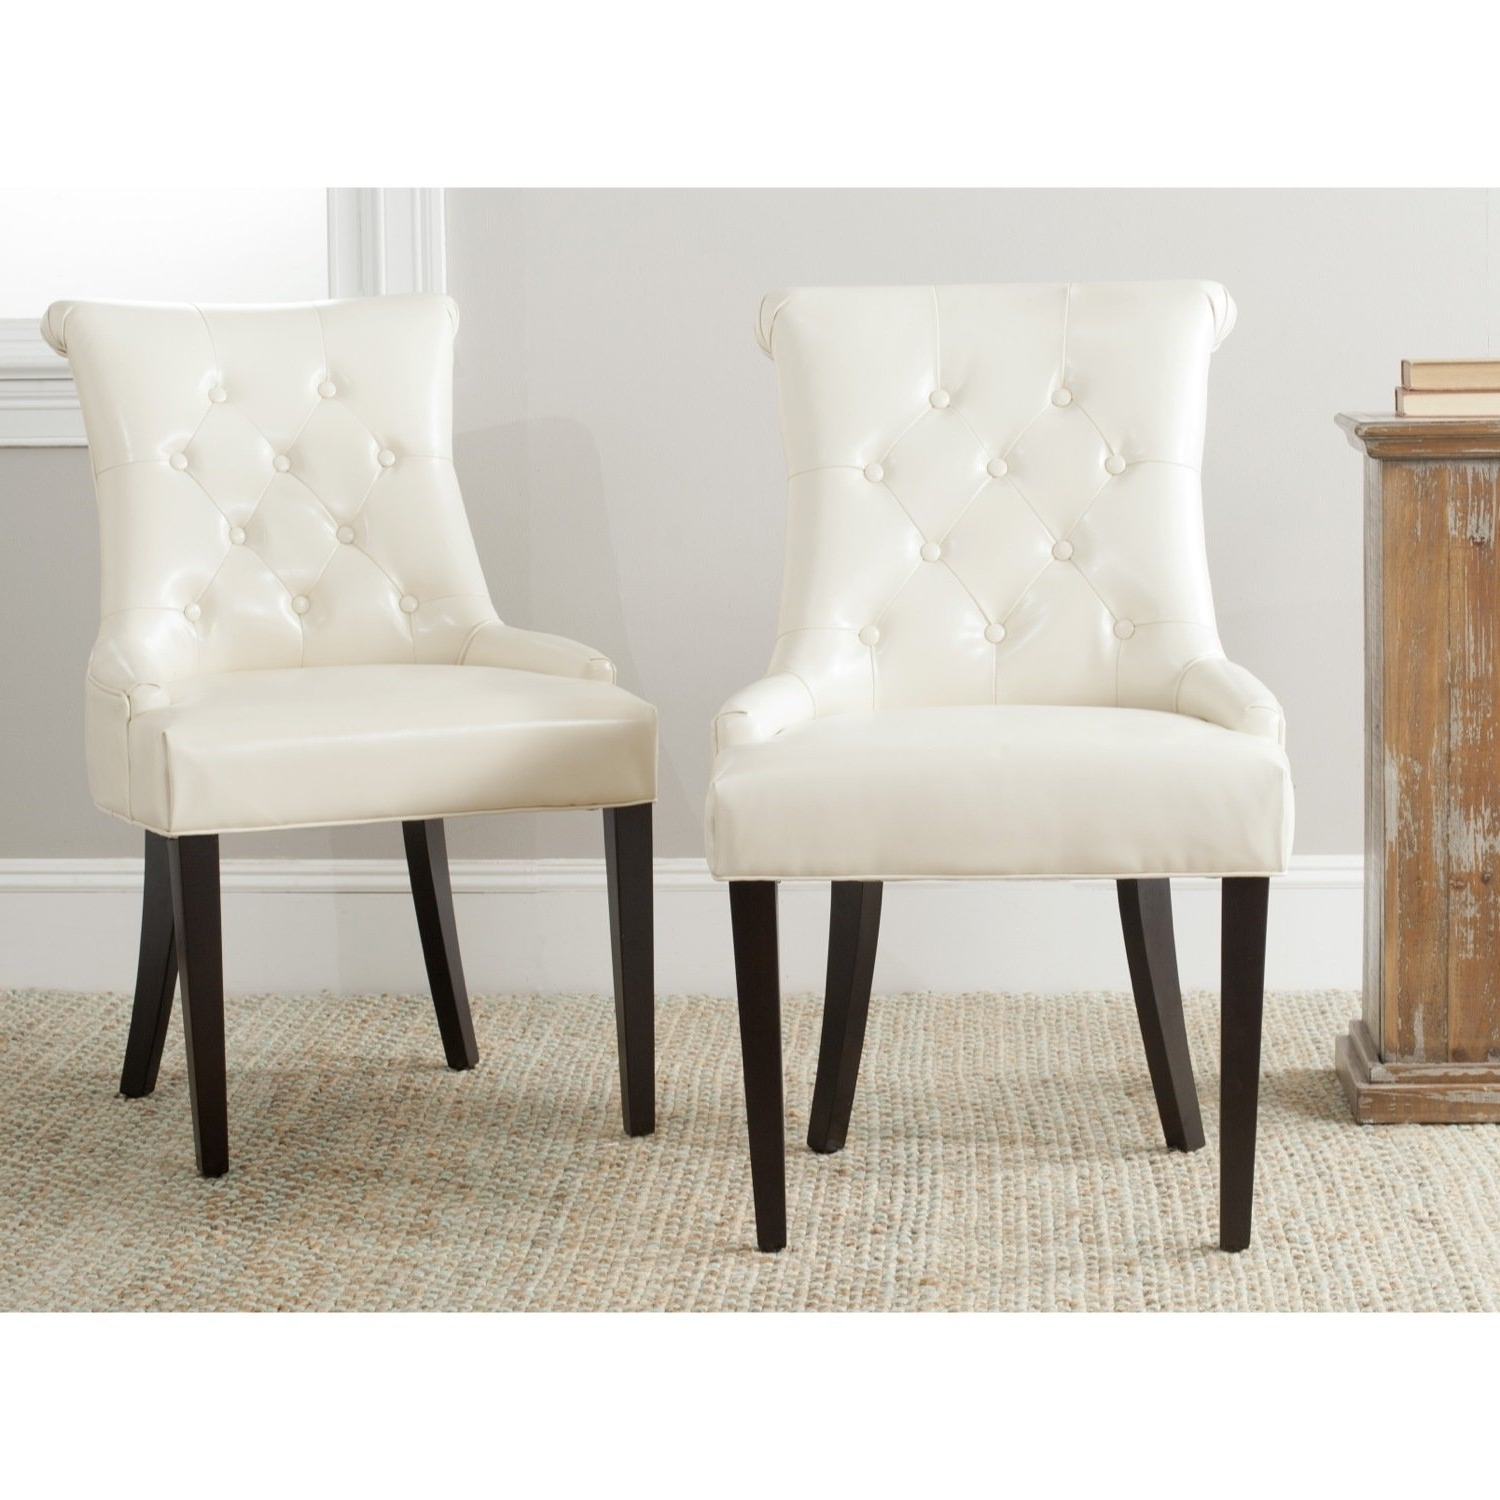 Cream Leather Dining Chairs Pertaining To Famous Details About Safavieh En Vogue Dining Bowie Cream Leather Dining Chairs  (Set Of 2) (View 10 of 25)